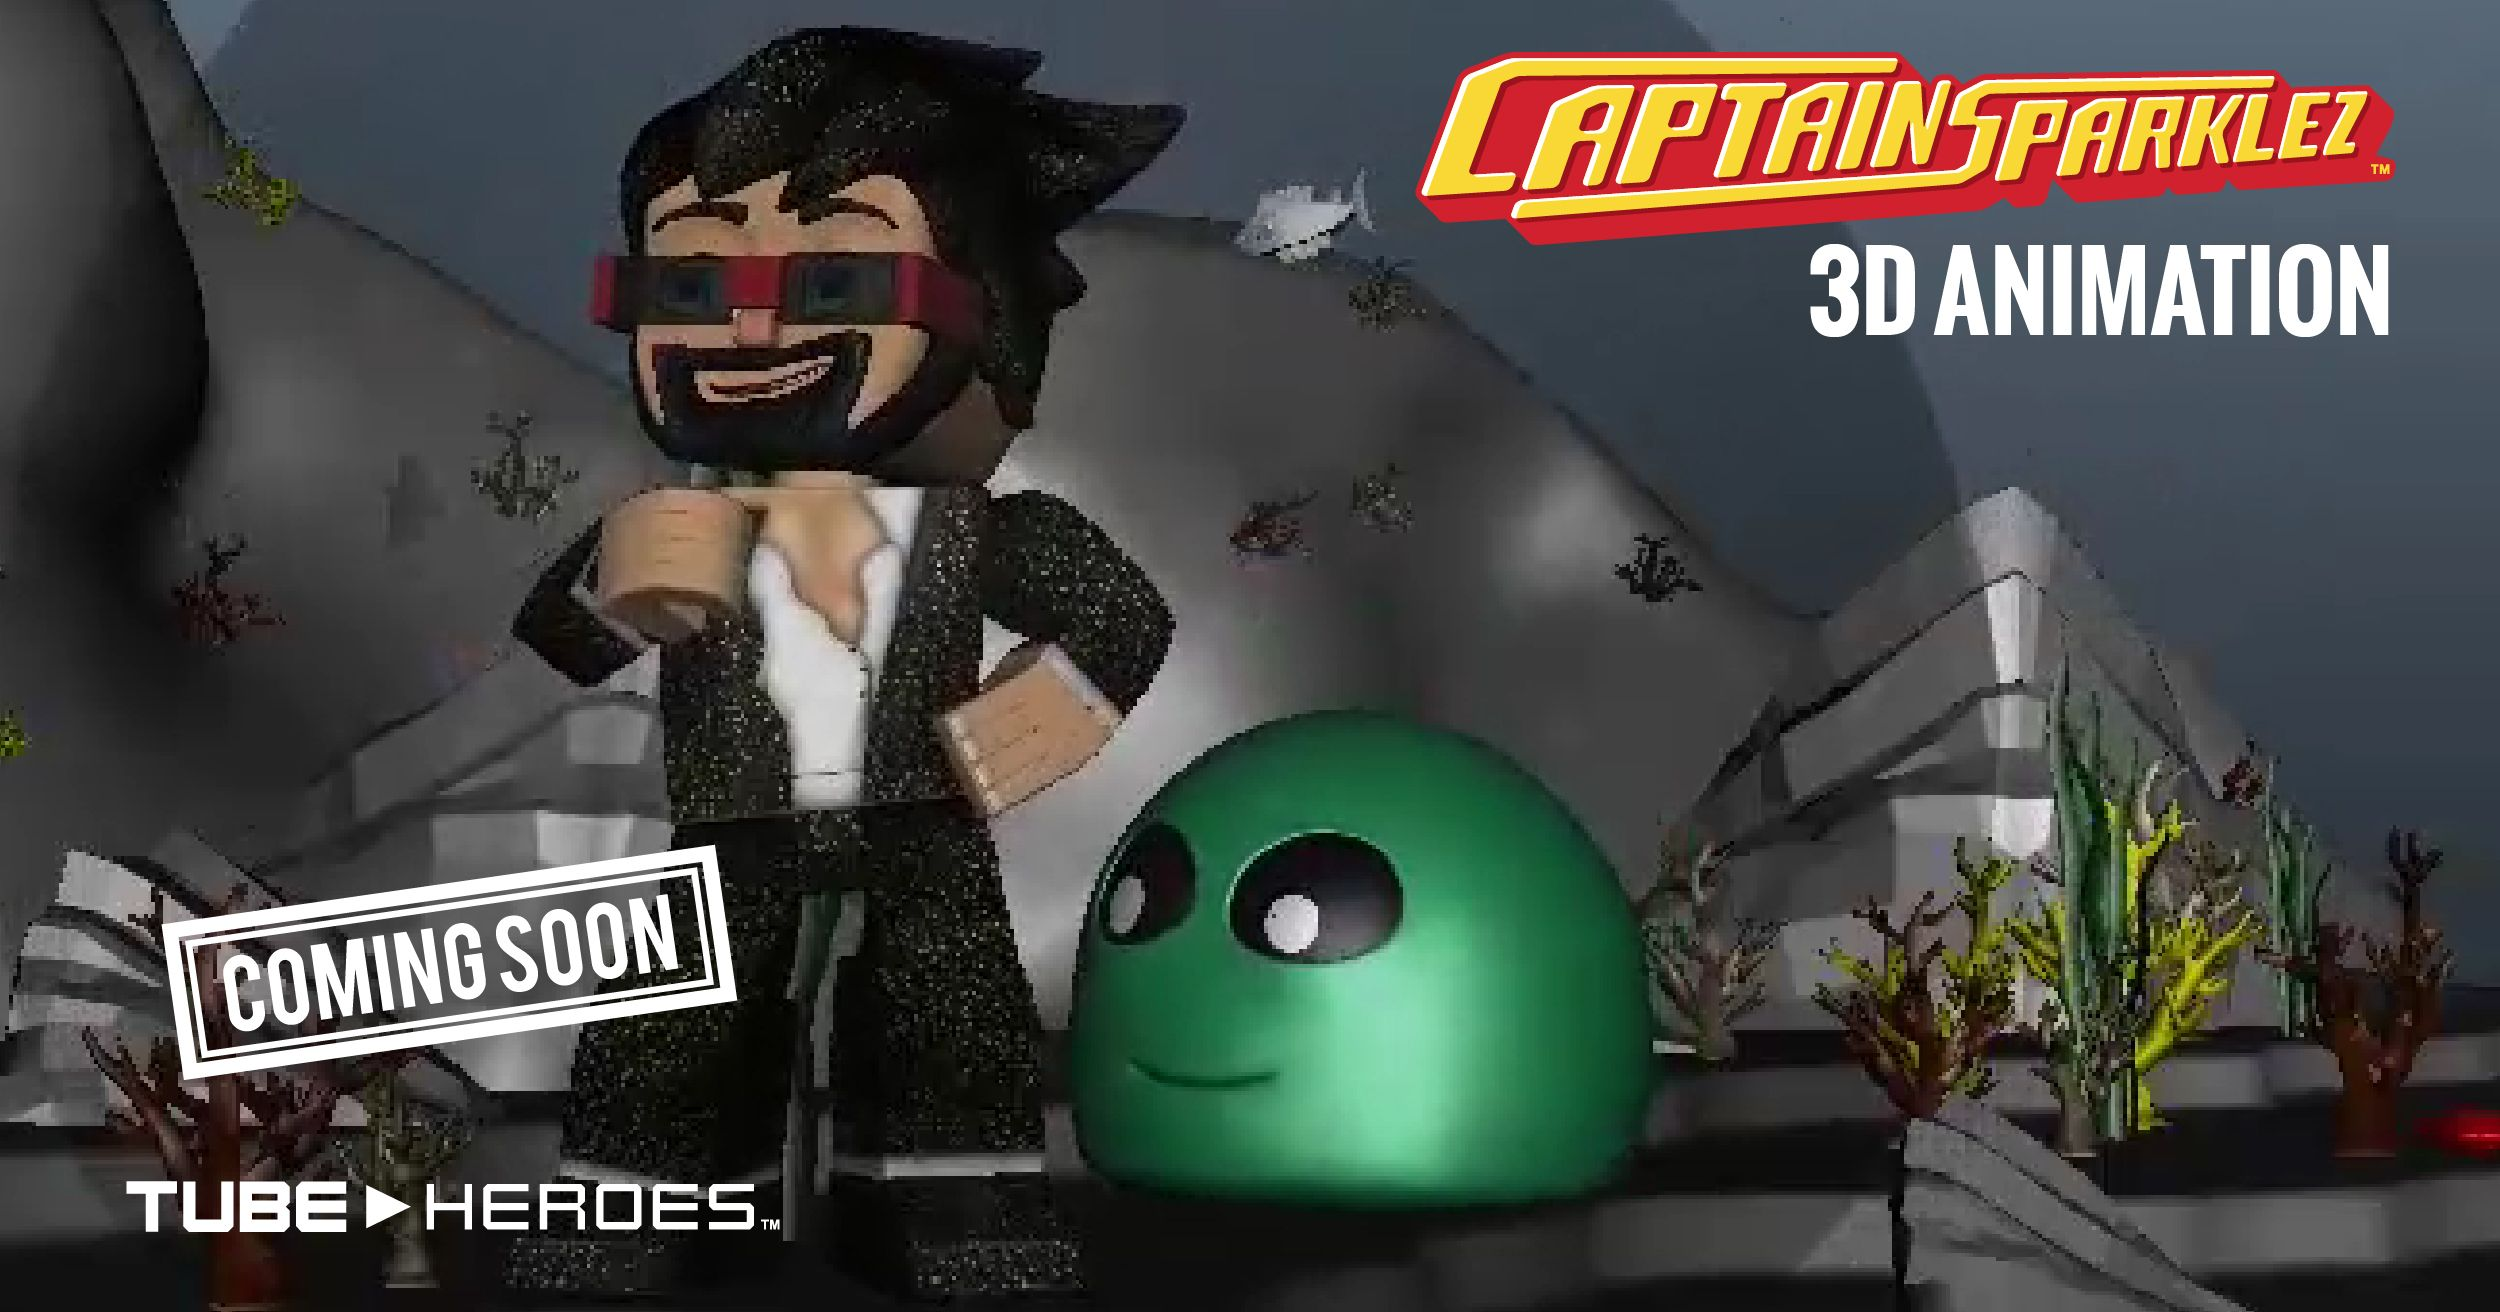 Jerry Is Captainsparklez Sidekick Do You Know All His